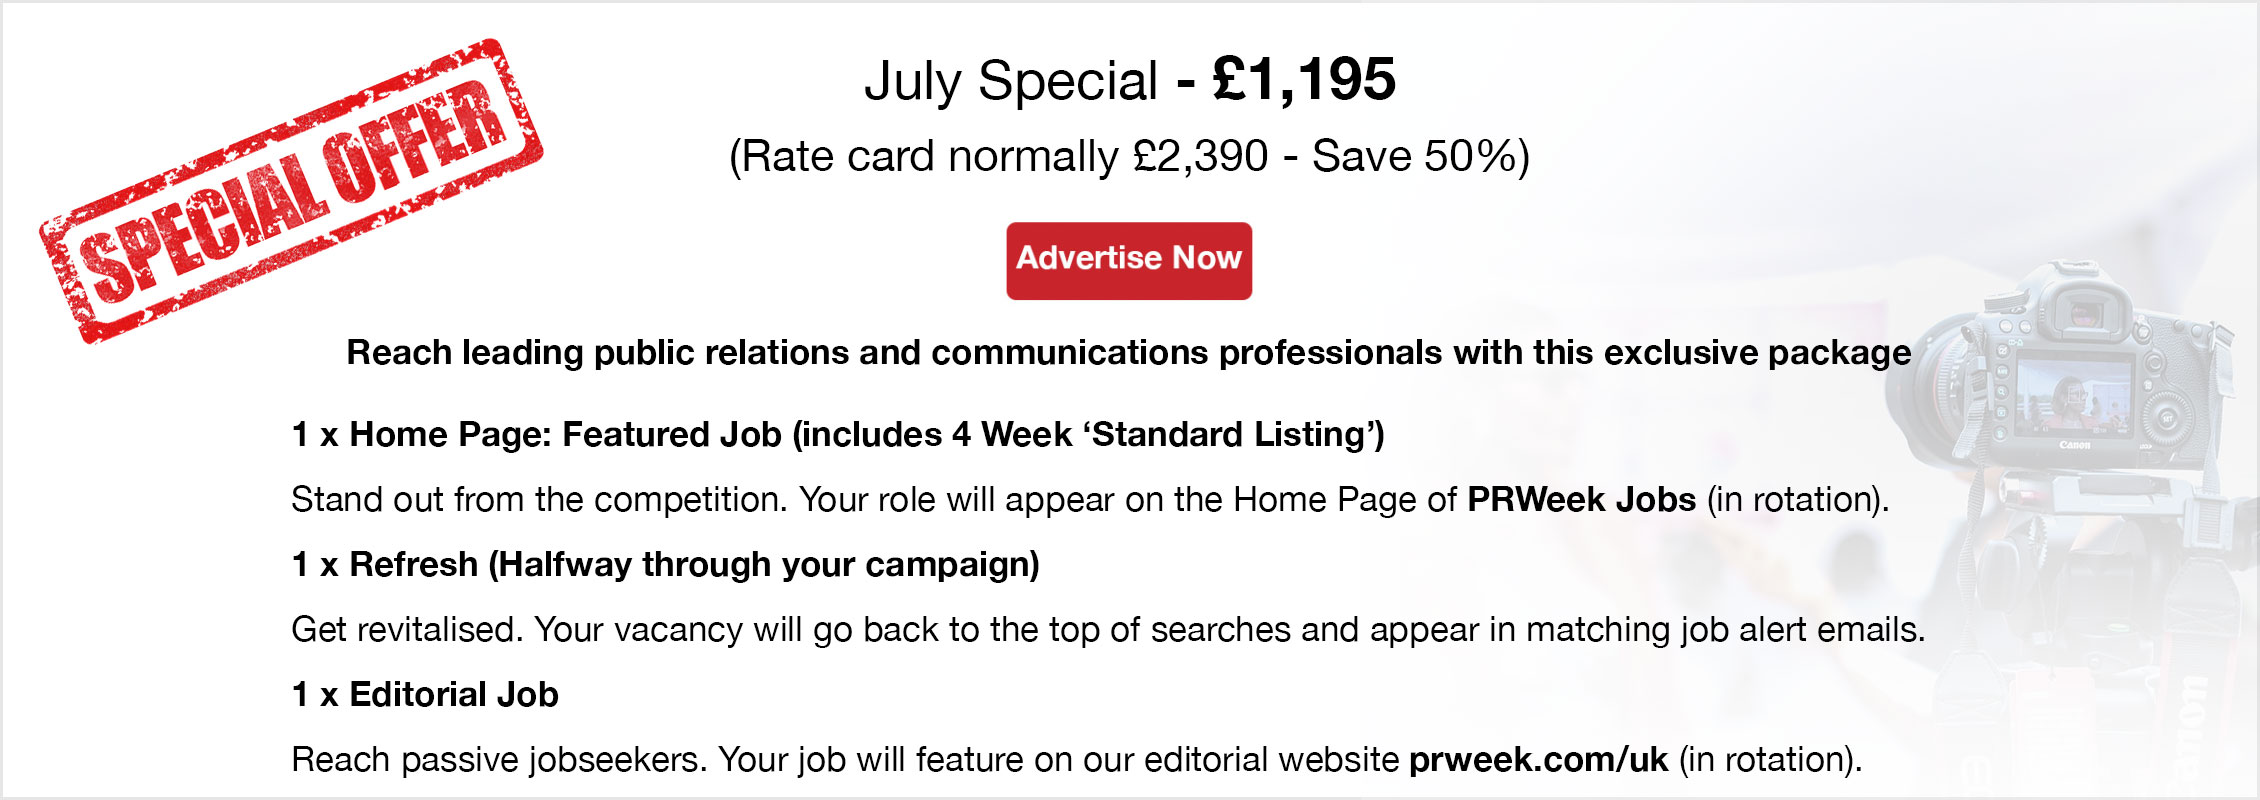 Special Offer. July Special - £1,097. (Rate card normally £2,195 - Save 50%). Advertise Now. Reach leading public relations and communications professionals with this exclusive package. 1 x Home Page: Featured Job (4 Week Listing)